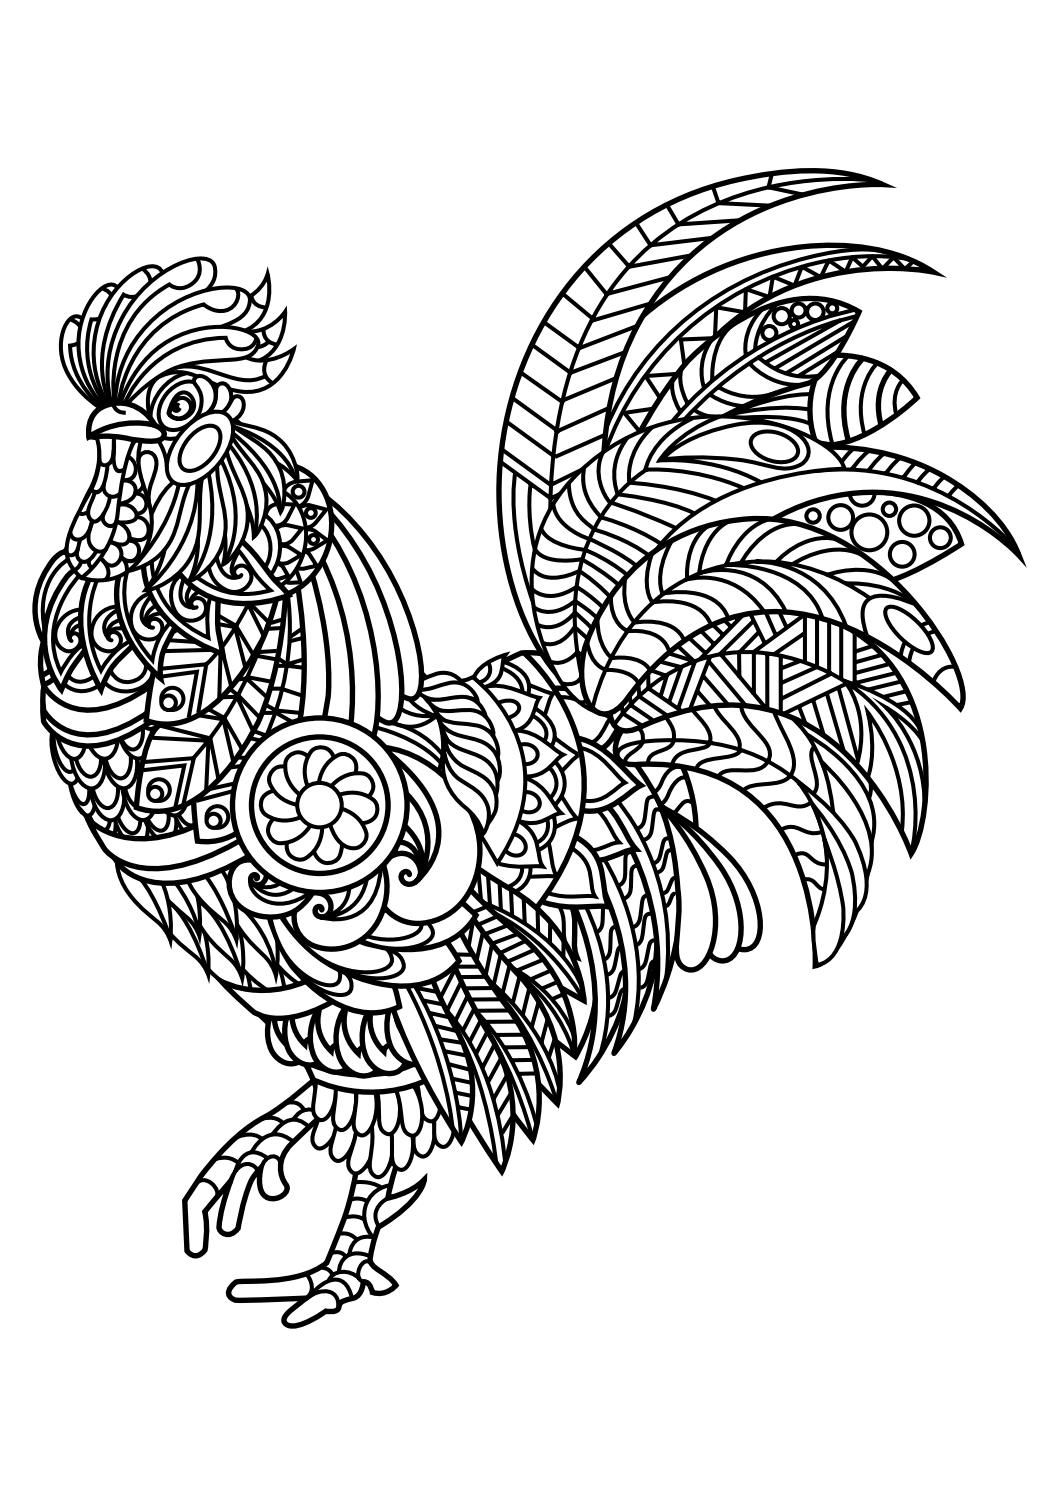 Animal coloring pages pdf Bird coloring pages, Horse